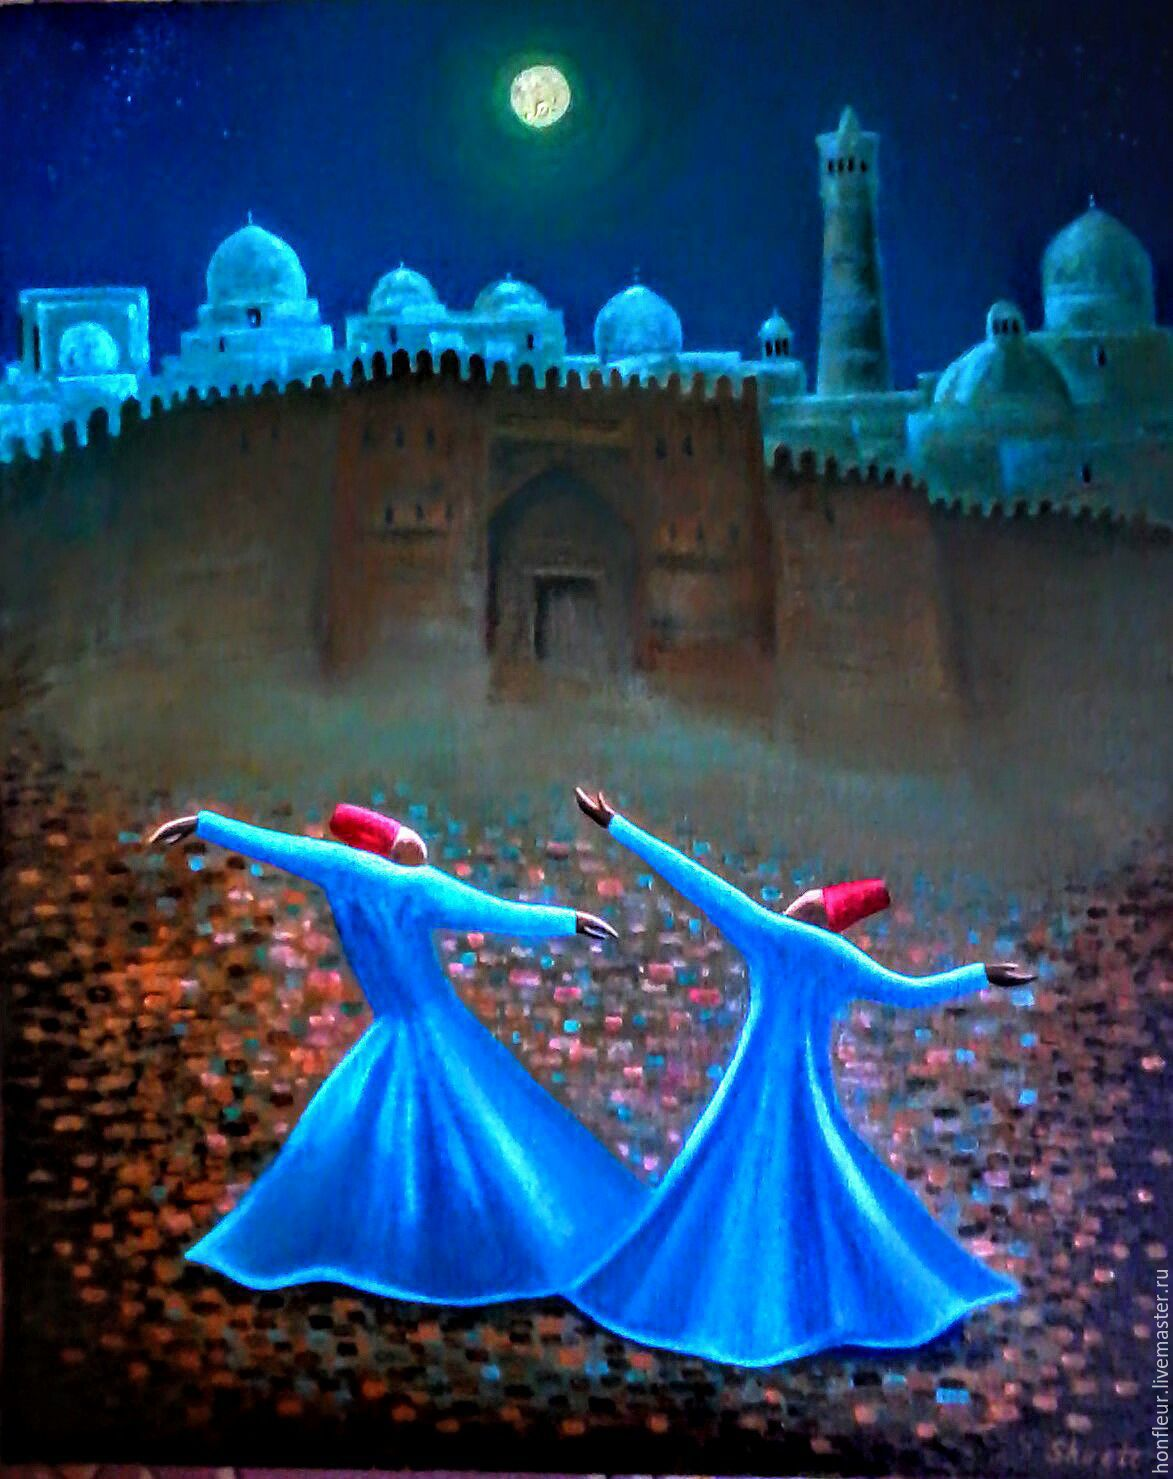 Painting: Dance of dervishes at the walls of Bukhara, Pictures, Moscow,  Фото №1